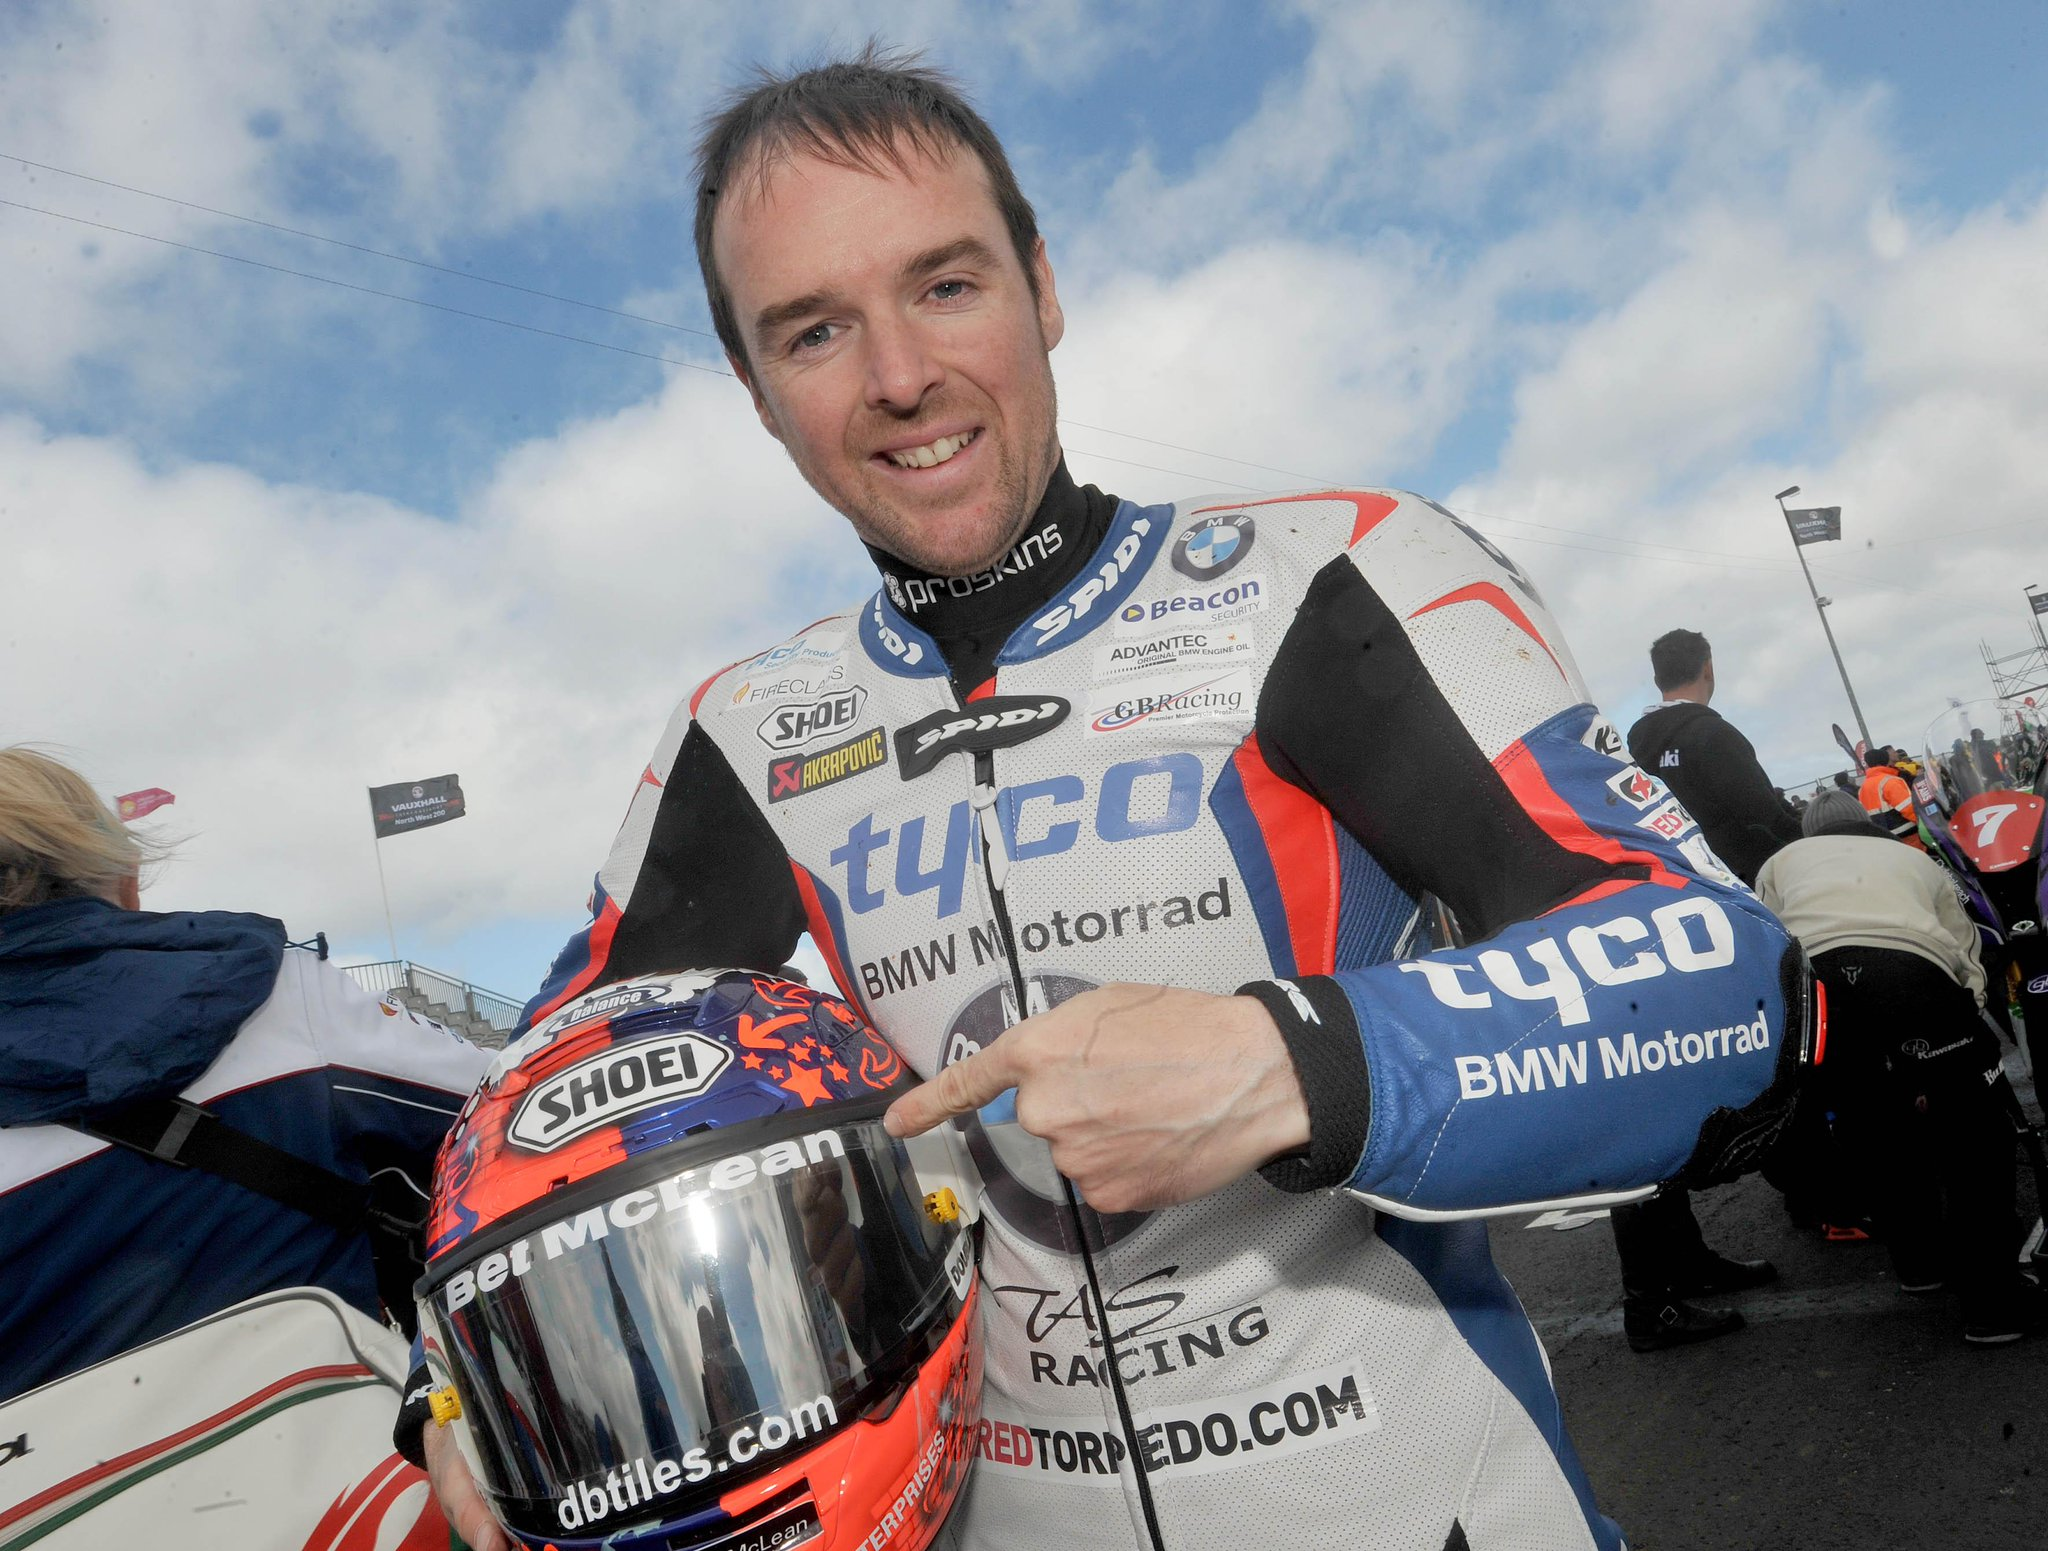 [Road racing] NW 200  2015  - Page 3 CE4118IWEAAA83D